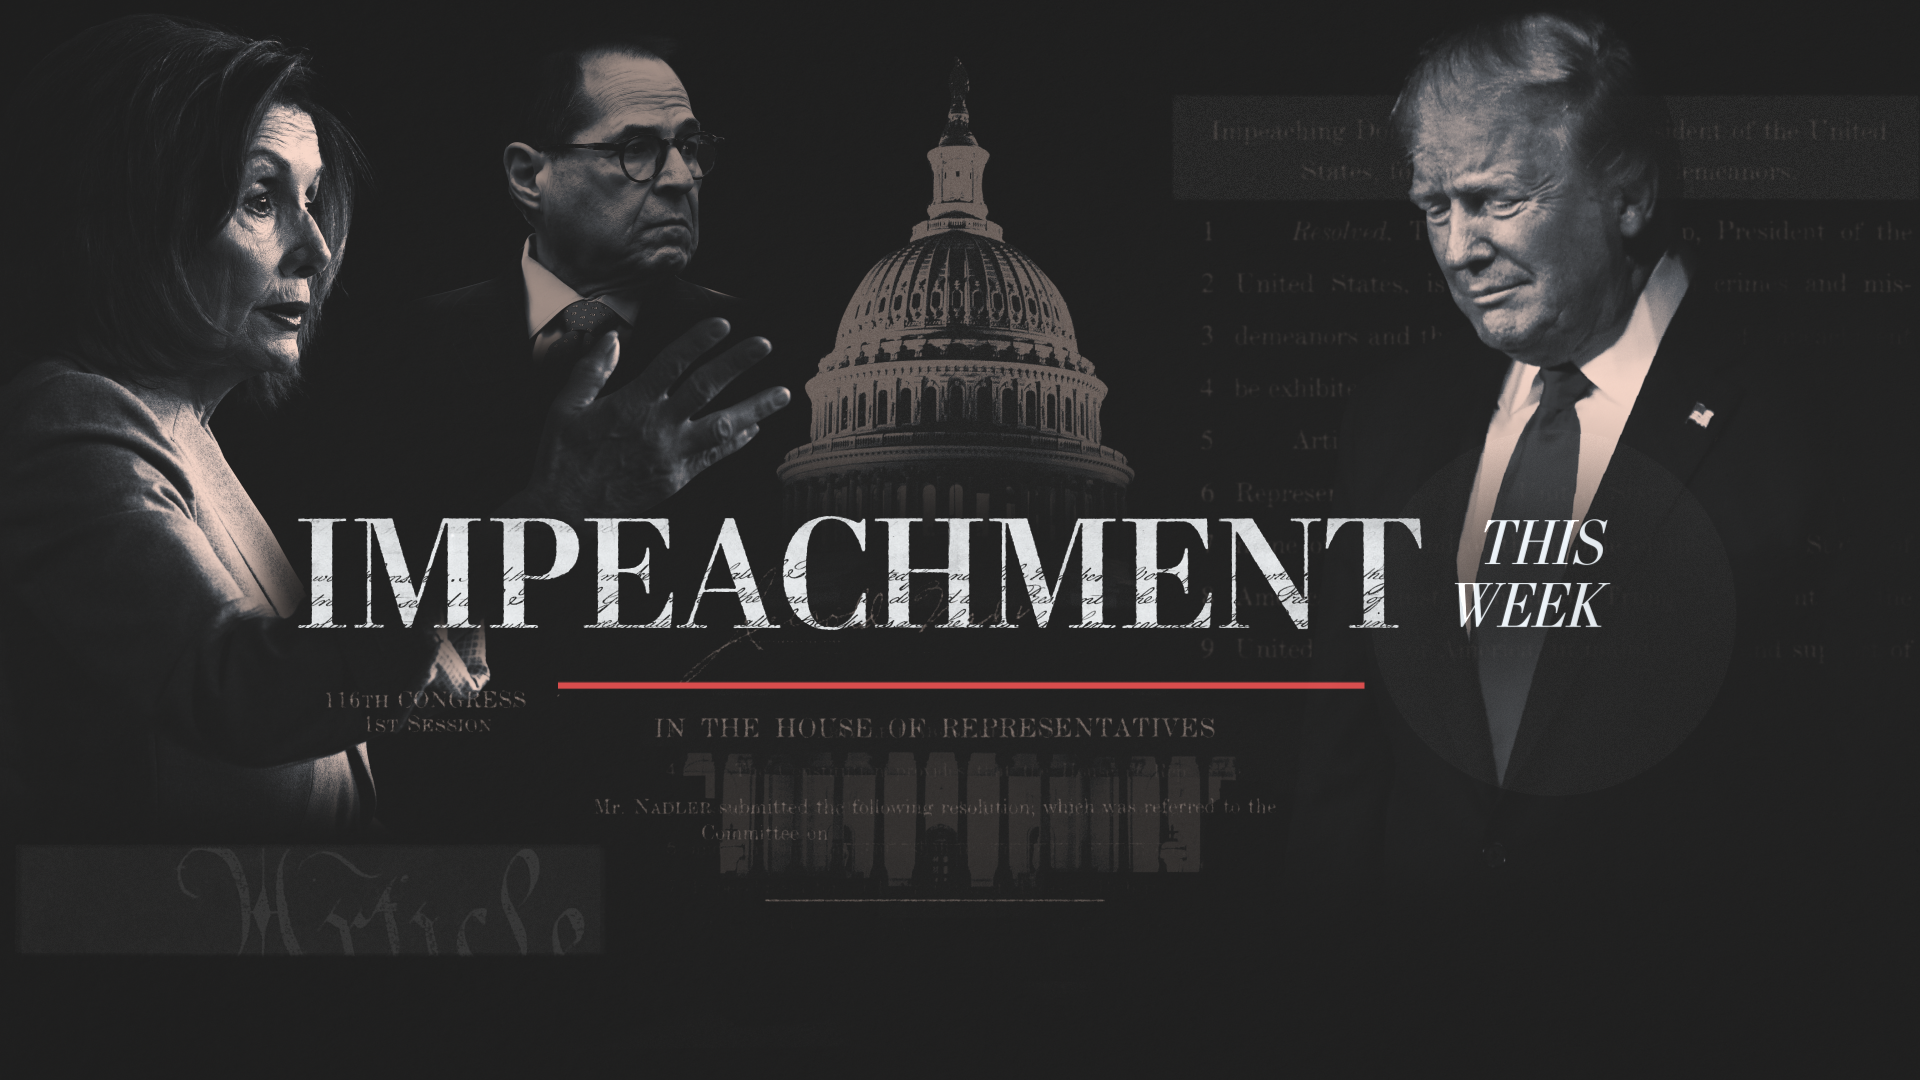 What happened this week in impeachment?